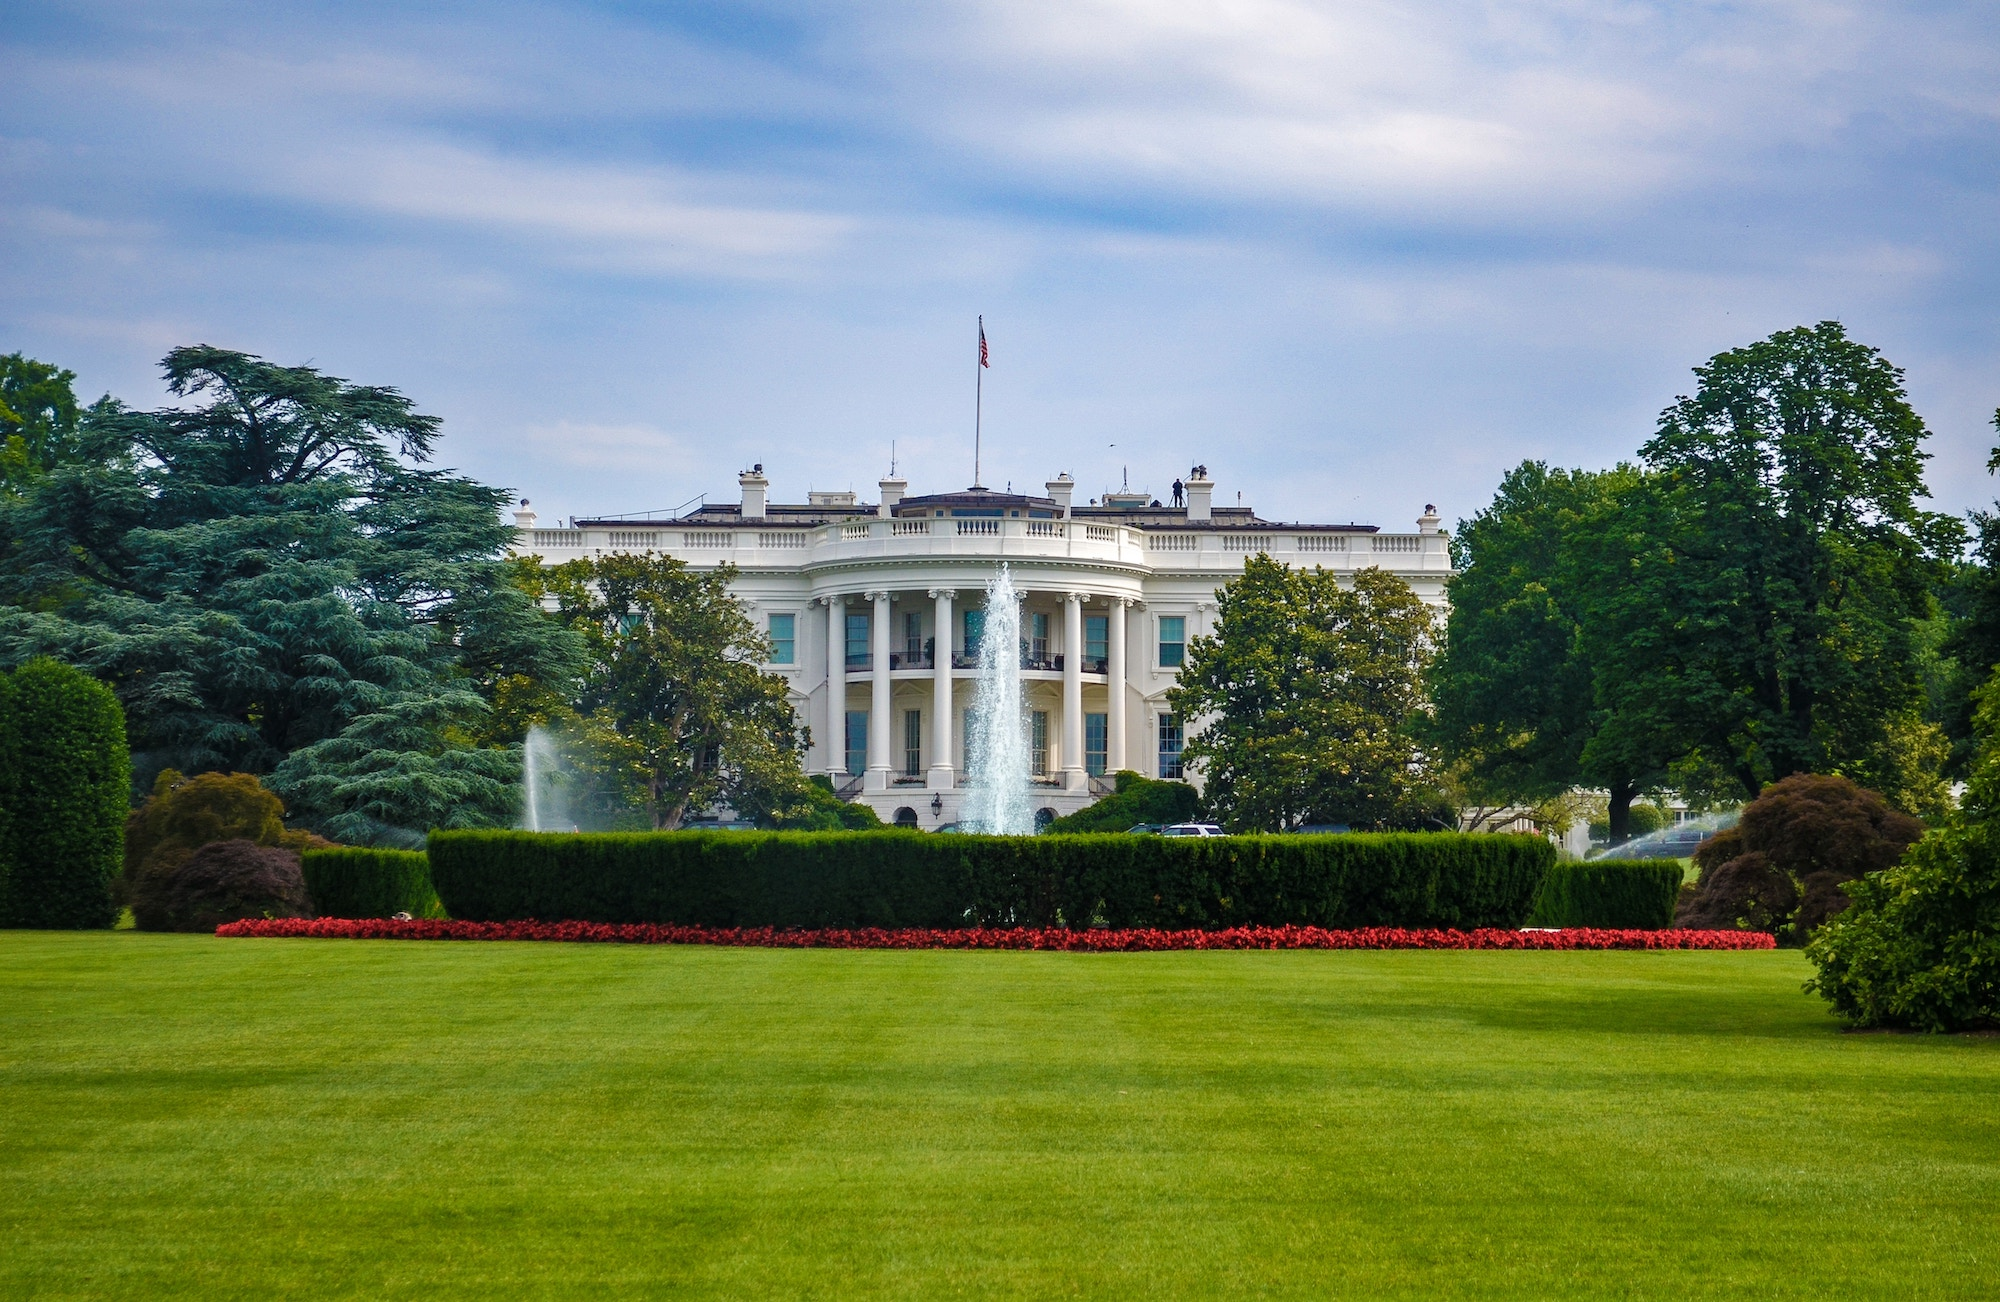 Religion in the Oval Office: The Religious Lives of American Presidents